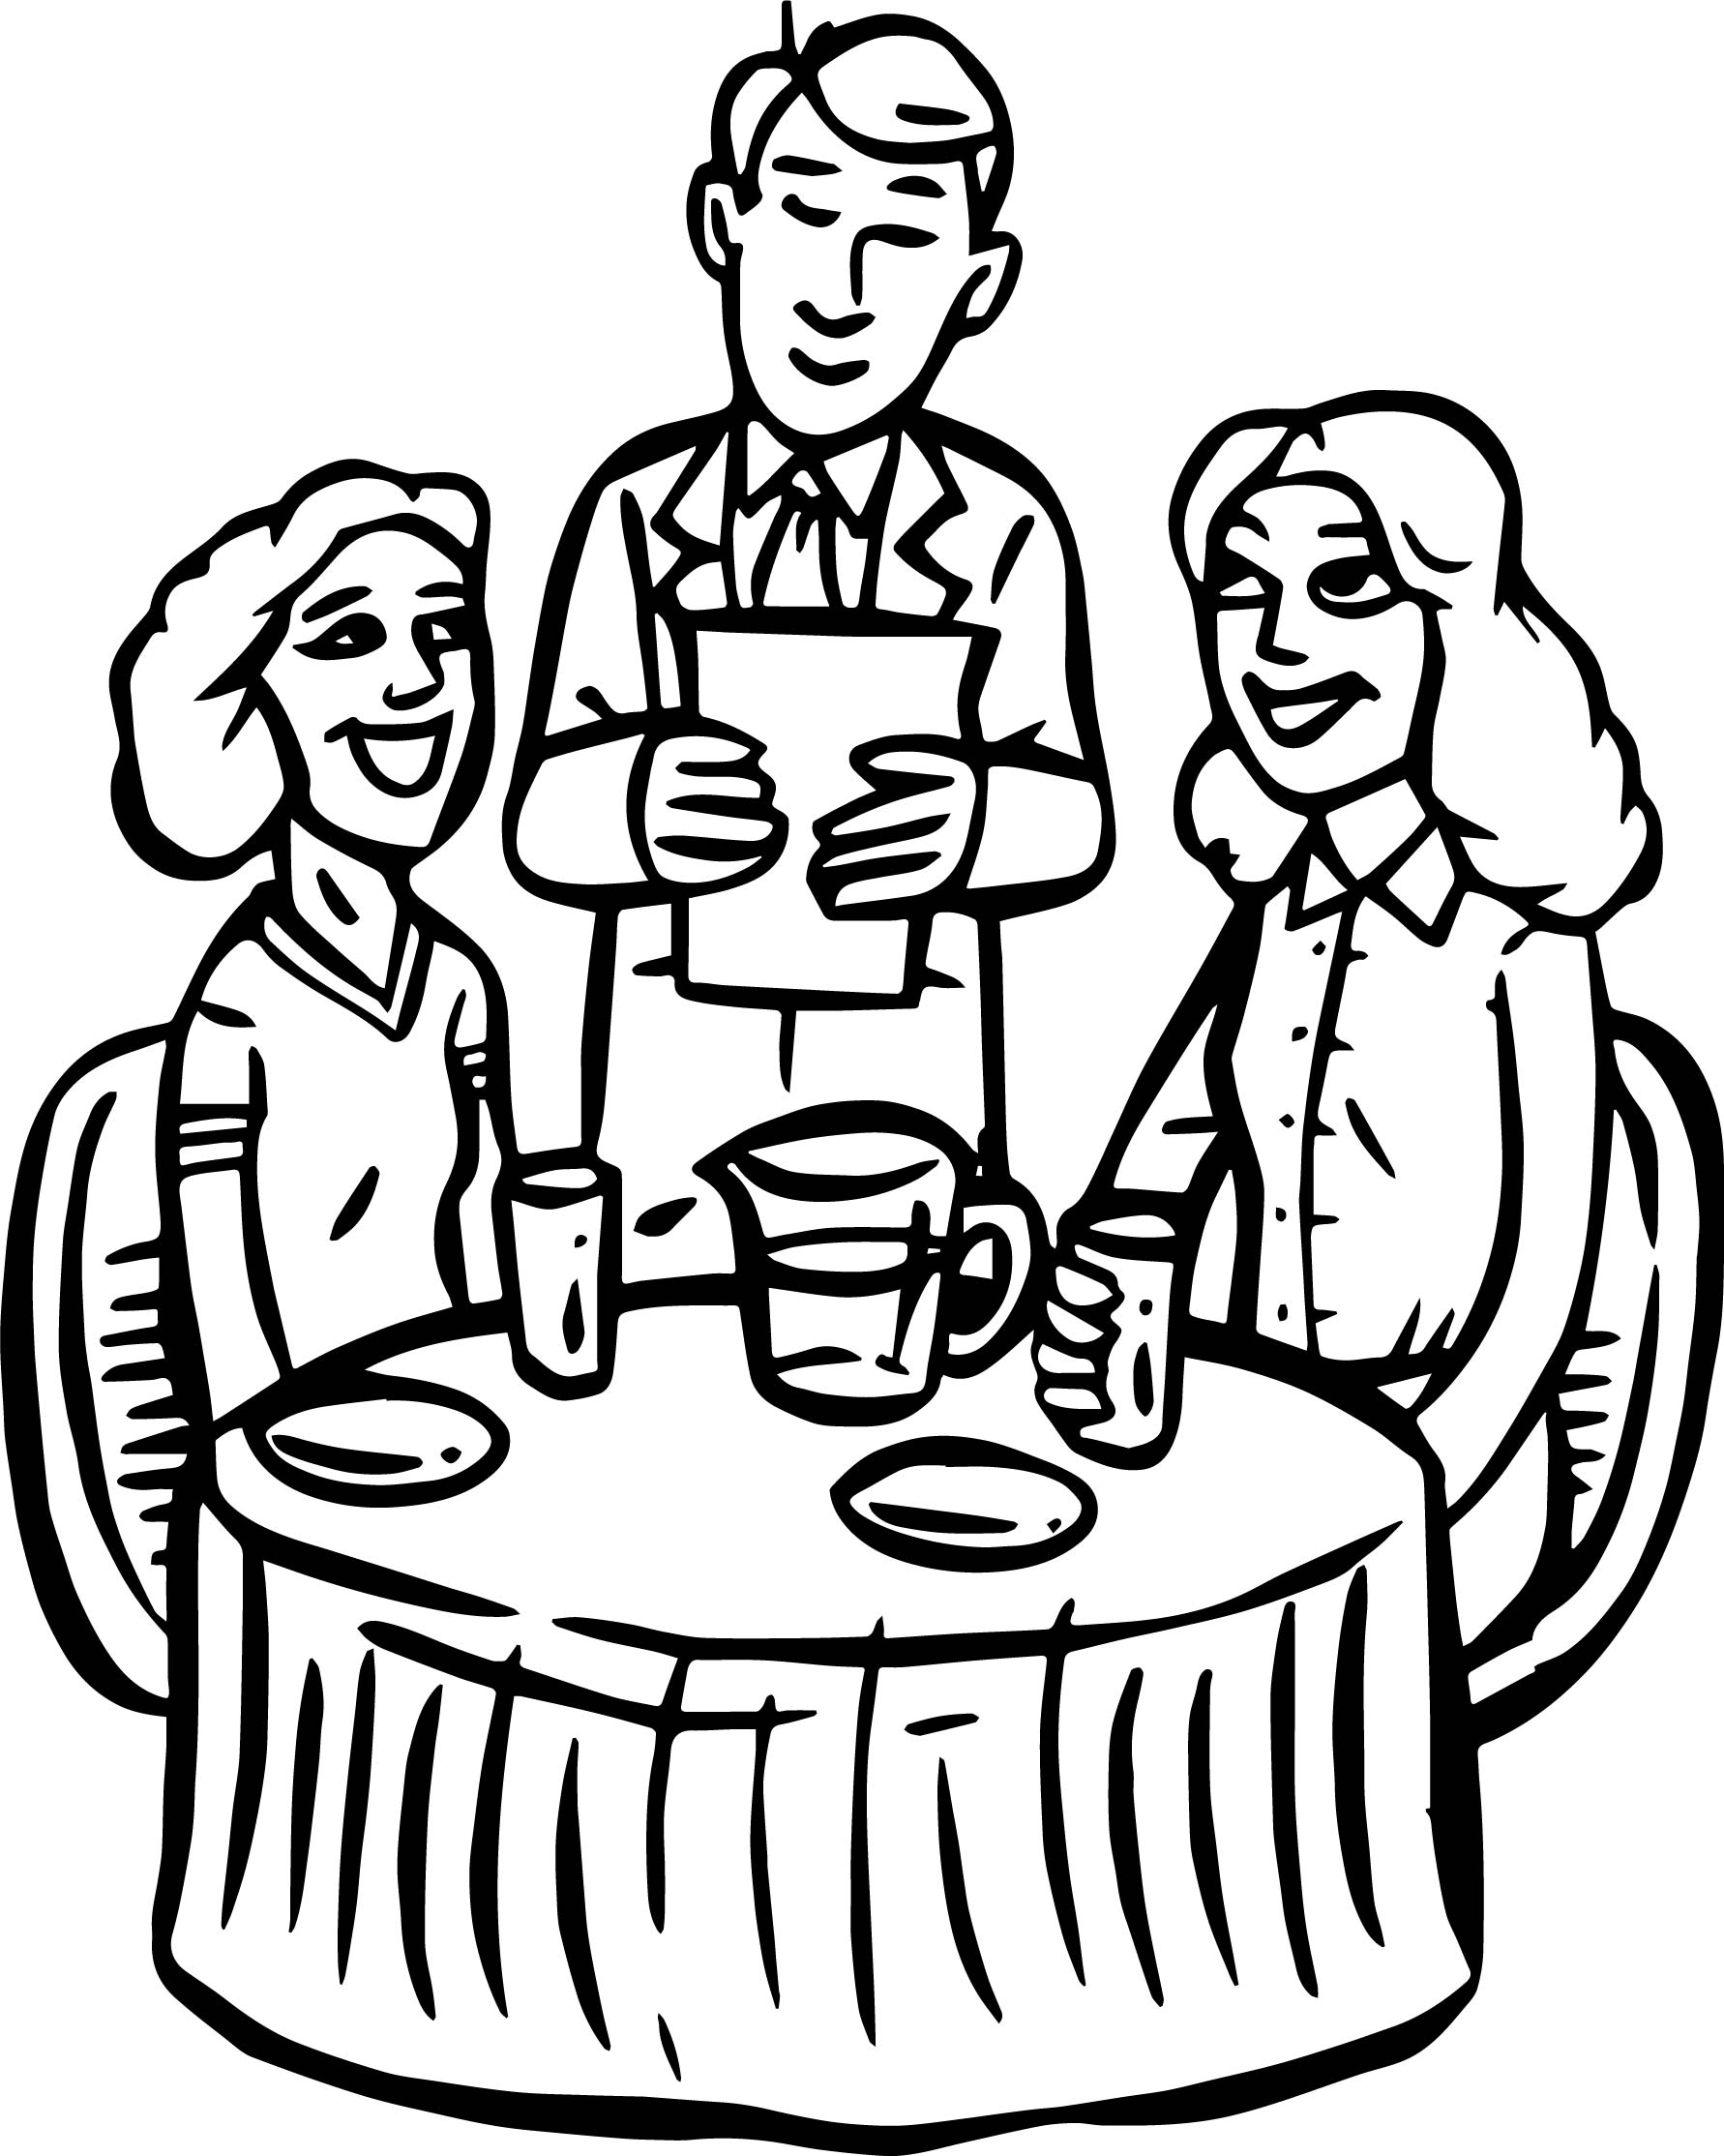 Coloring Pages For Restaurants : Healthy food coloring page pages for restaurant